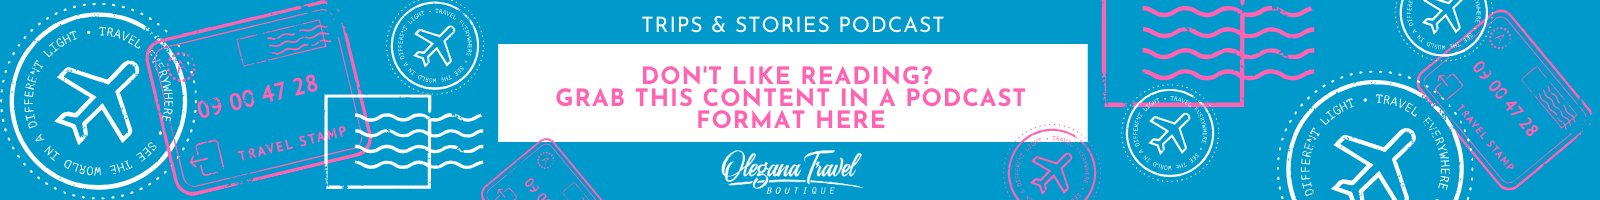 Don't like reading? Grab this content in the podcast format here.